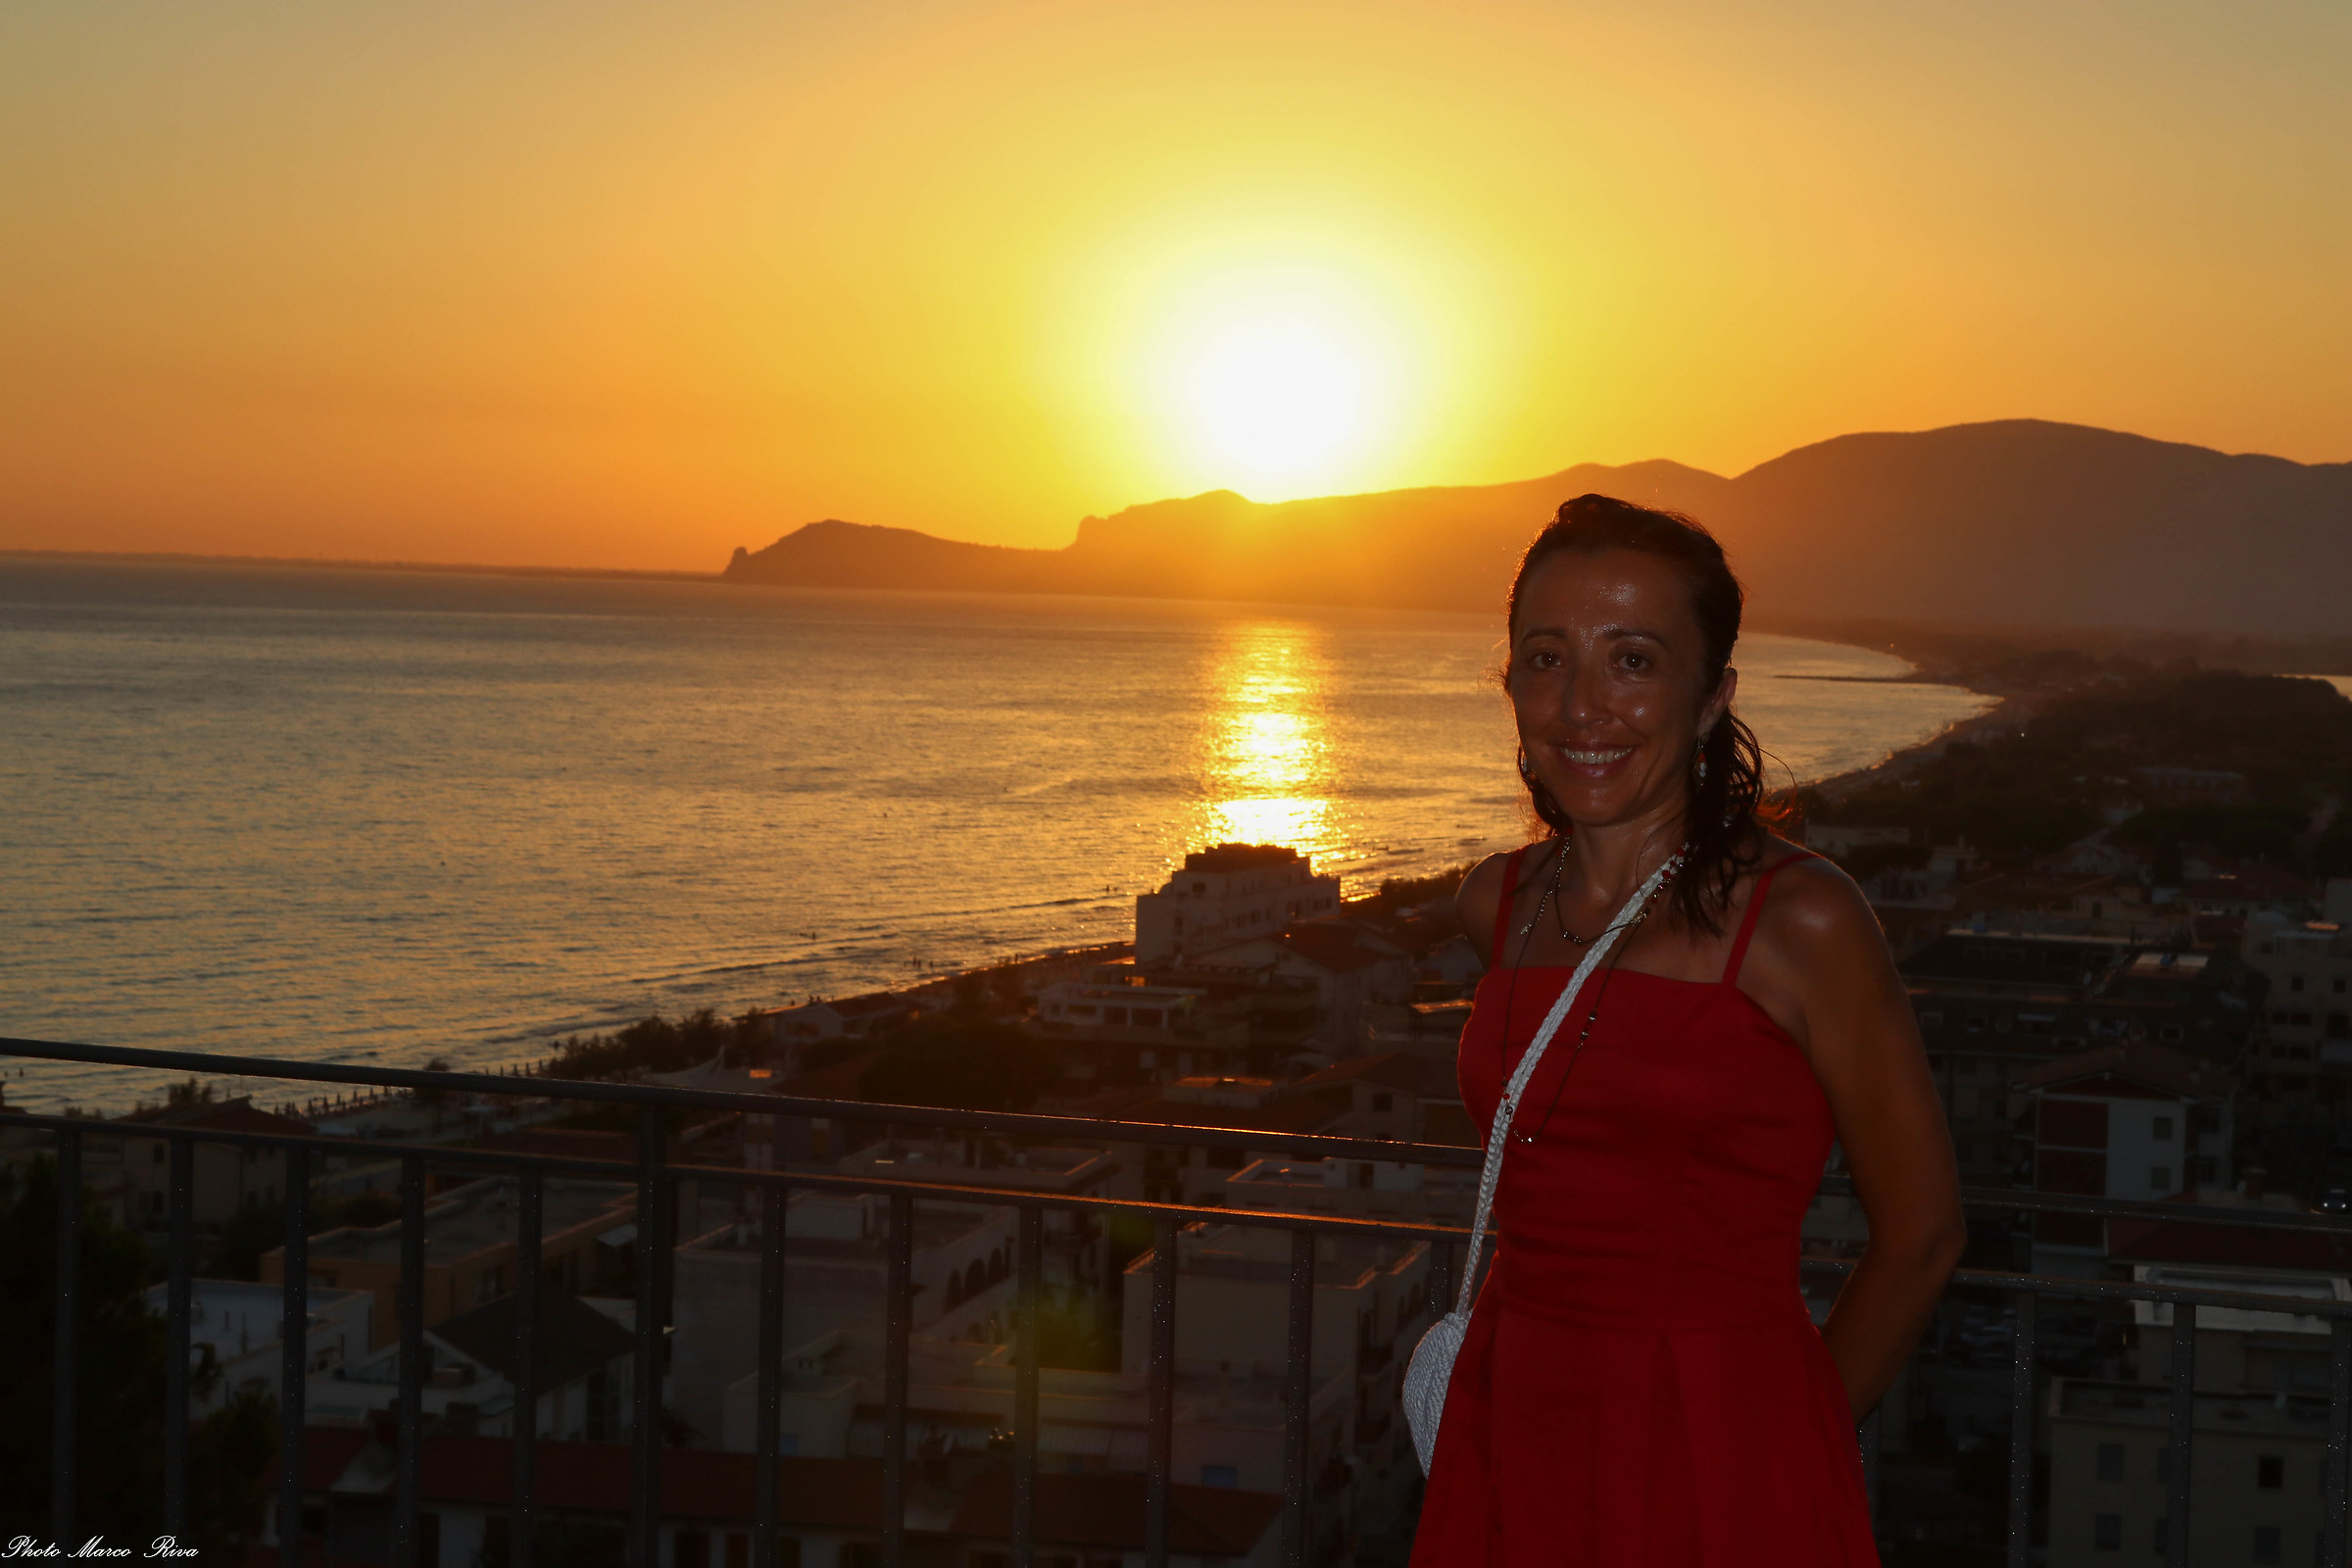 Paola and the sunset...